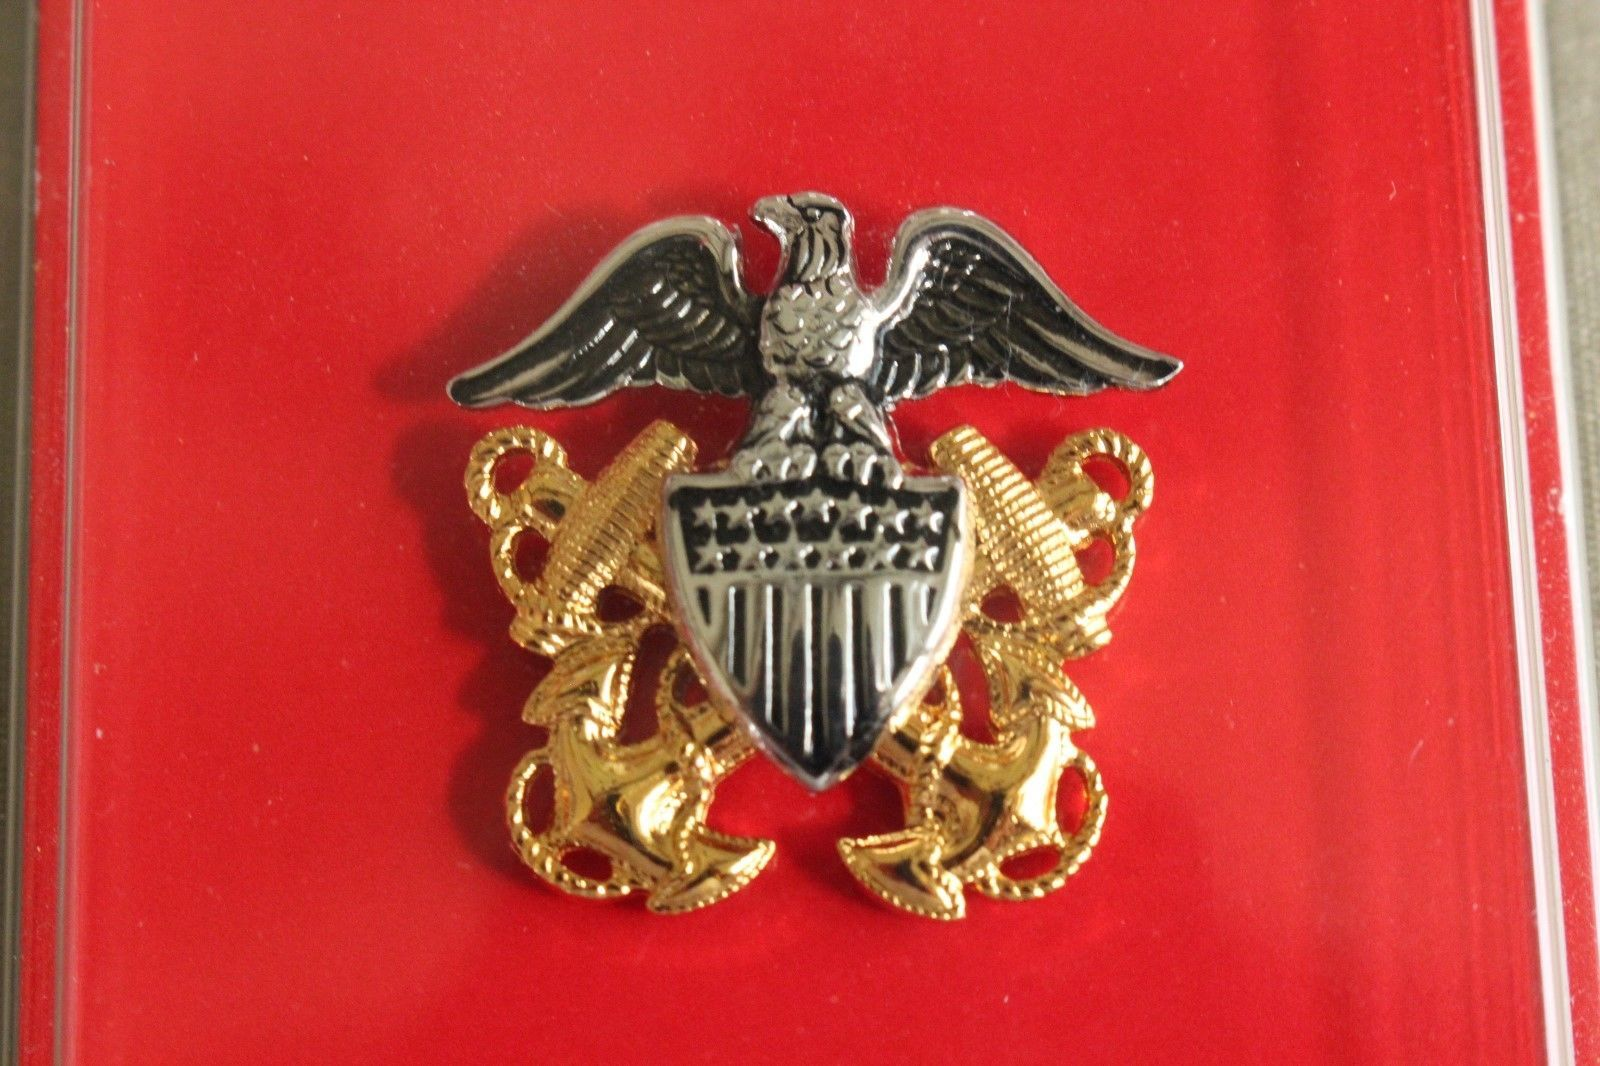 USN NAVY O-2 LTJG RANK OFFICER GARRISON CAP BADGE & DEVICE REDUCED SIZE MINI HR